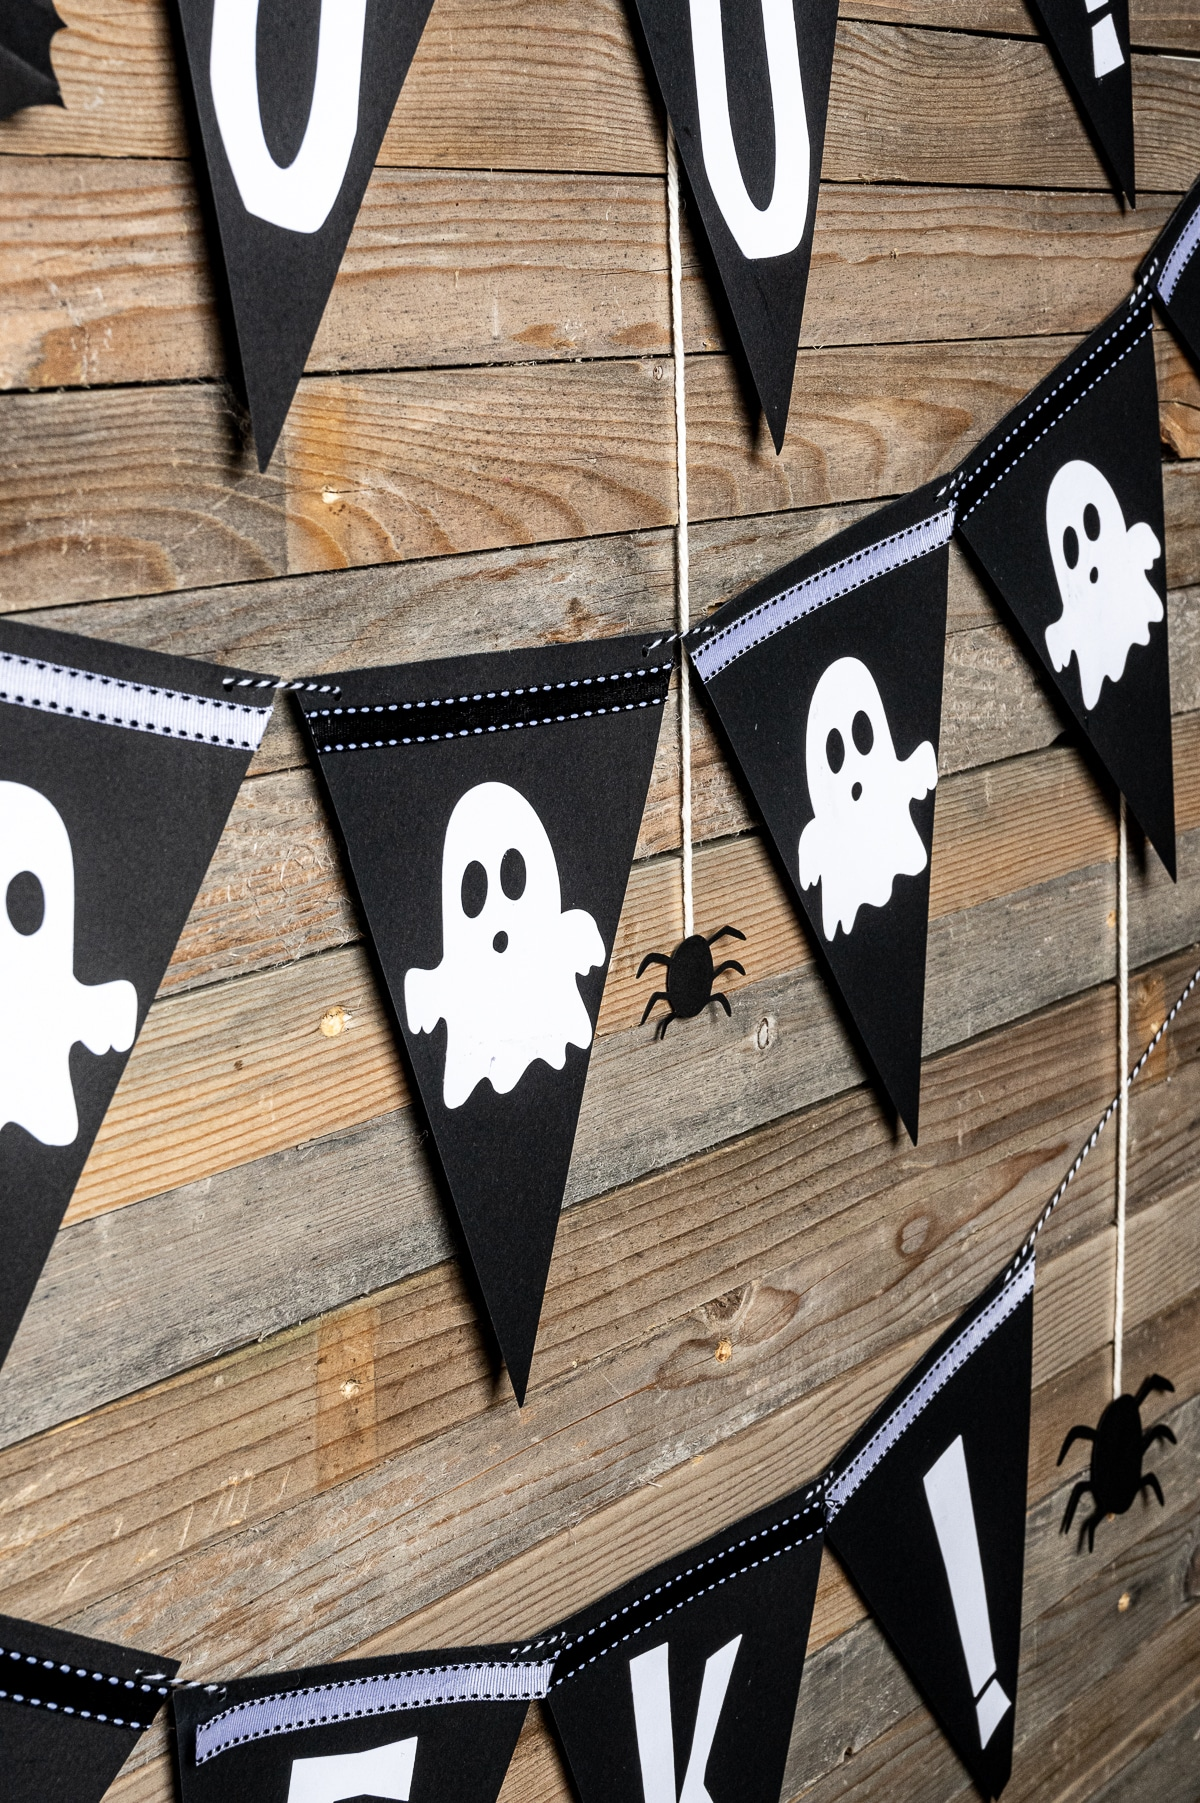 Black bunting with white cut out ghosts on a rustic wooden background